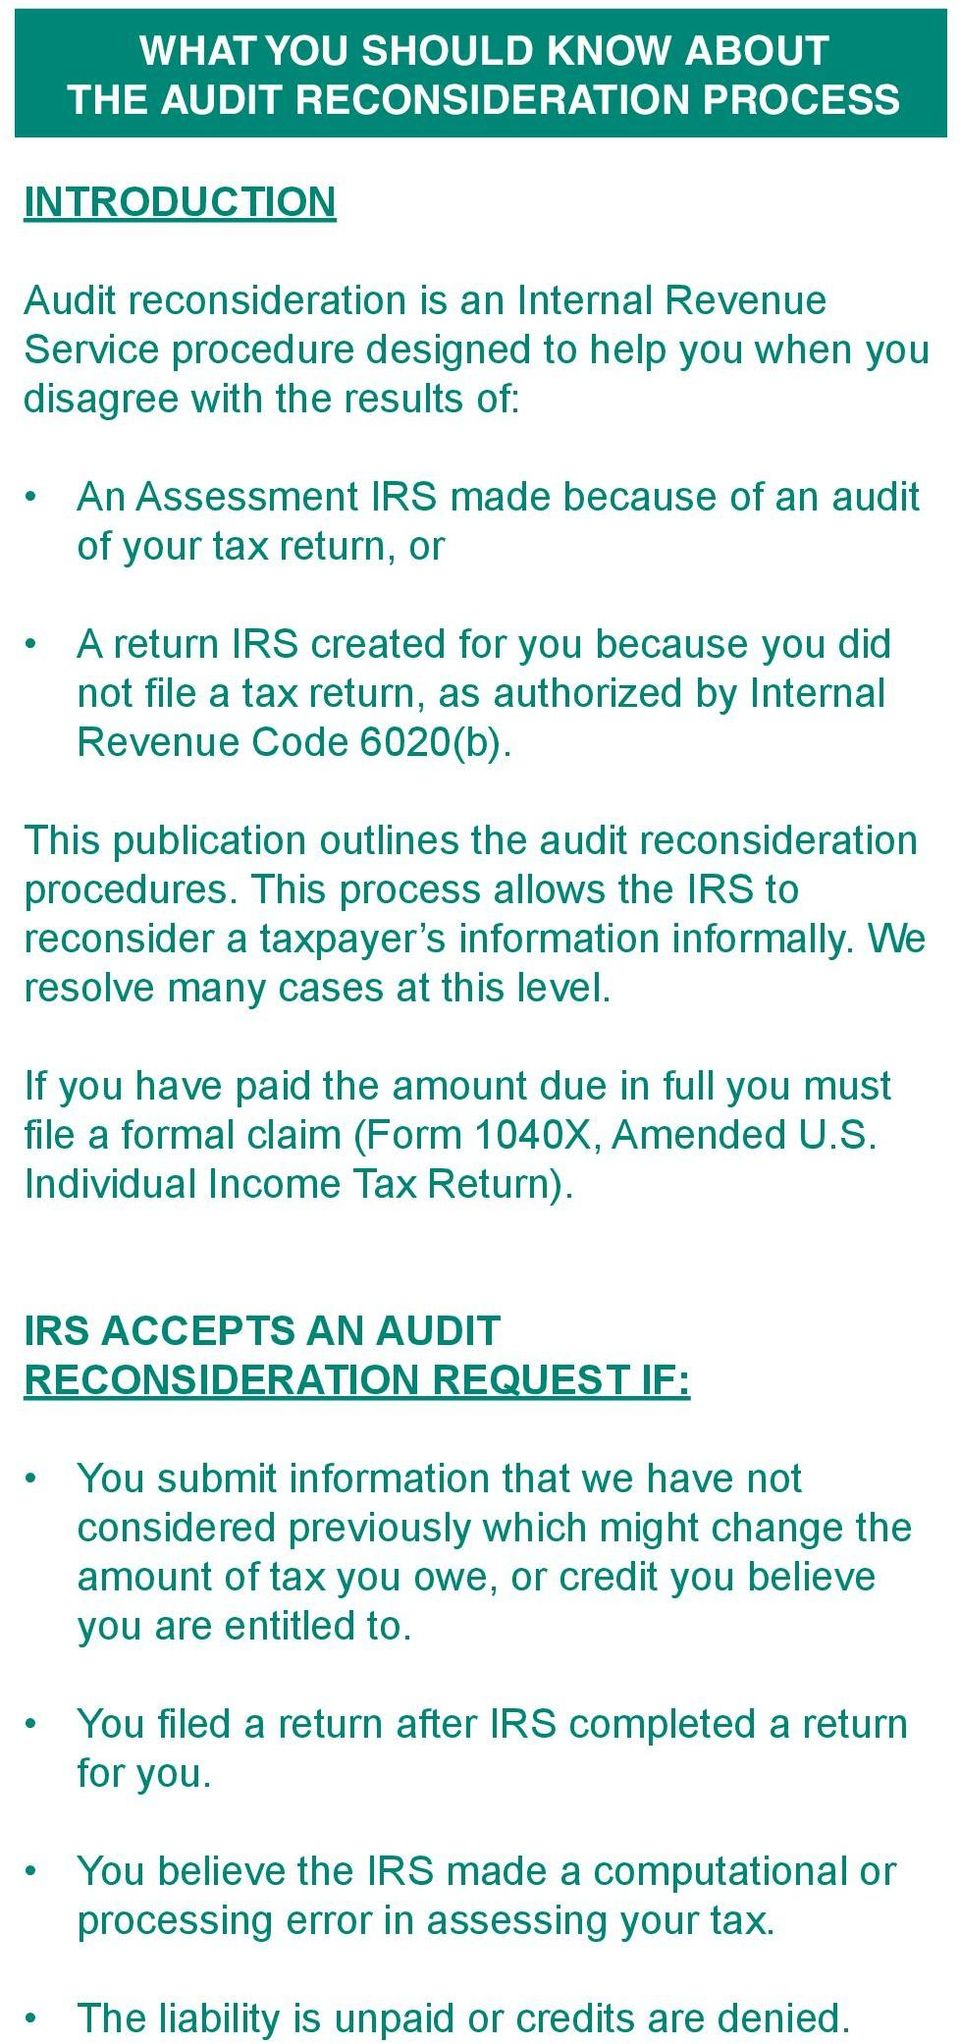 THE AUDIT RECONSIDERATION PROCESS - PDF